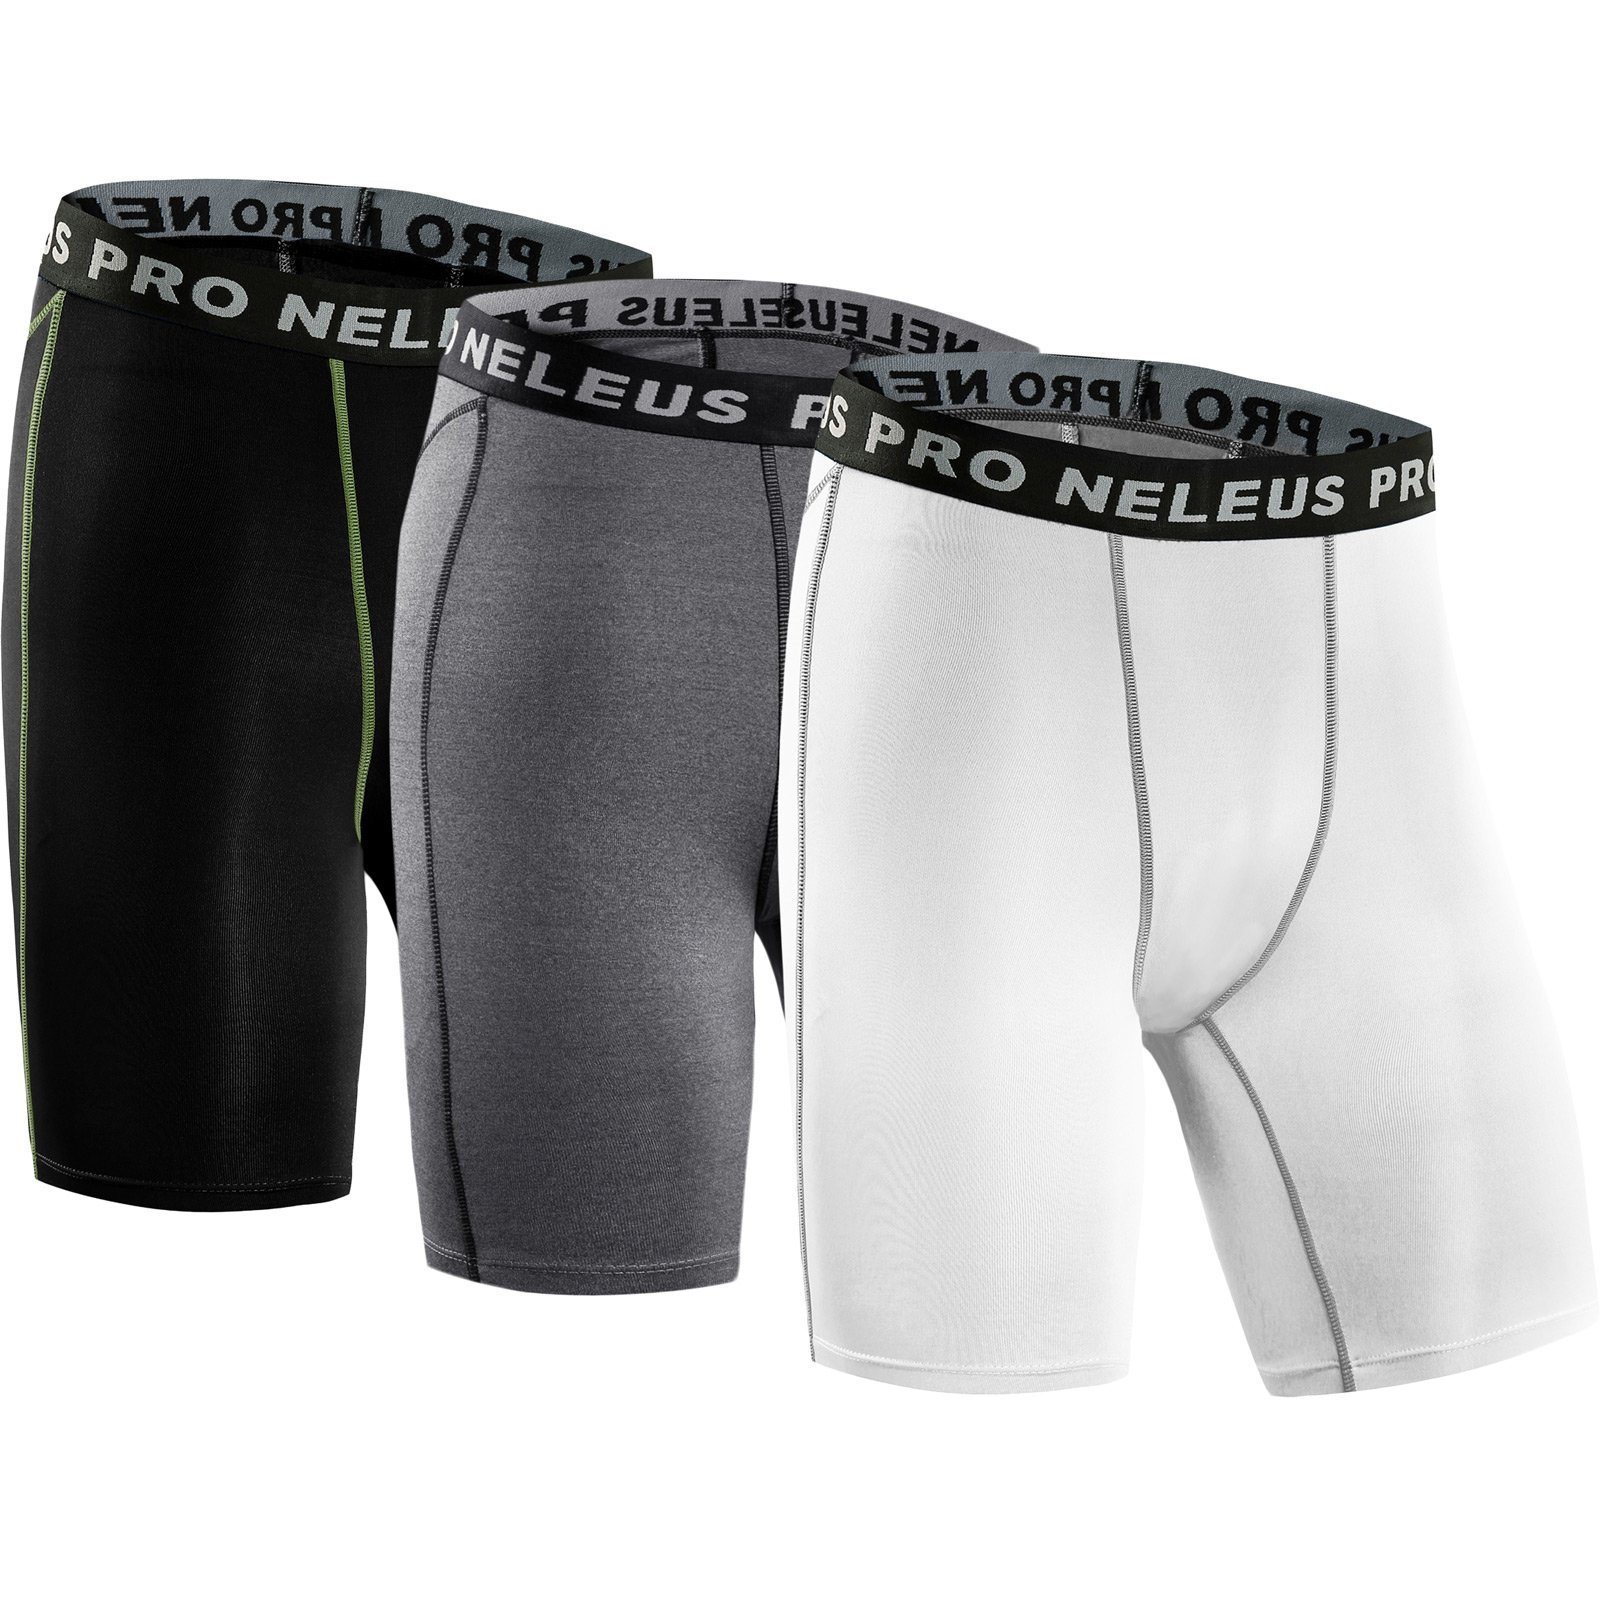 Neleus Men's 3 Pack Compression Short,047,Black,Grey,White,US L,EU XL